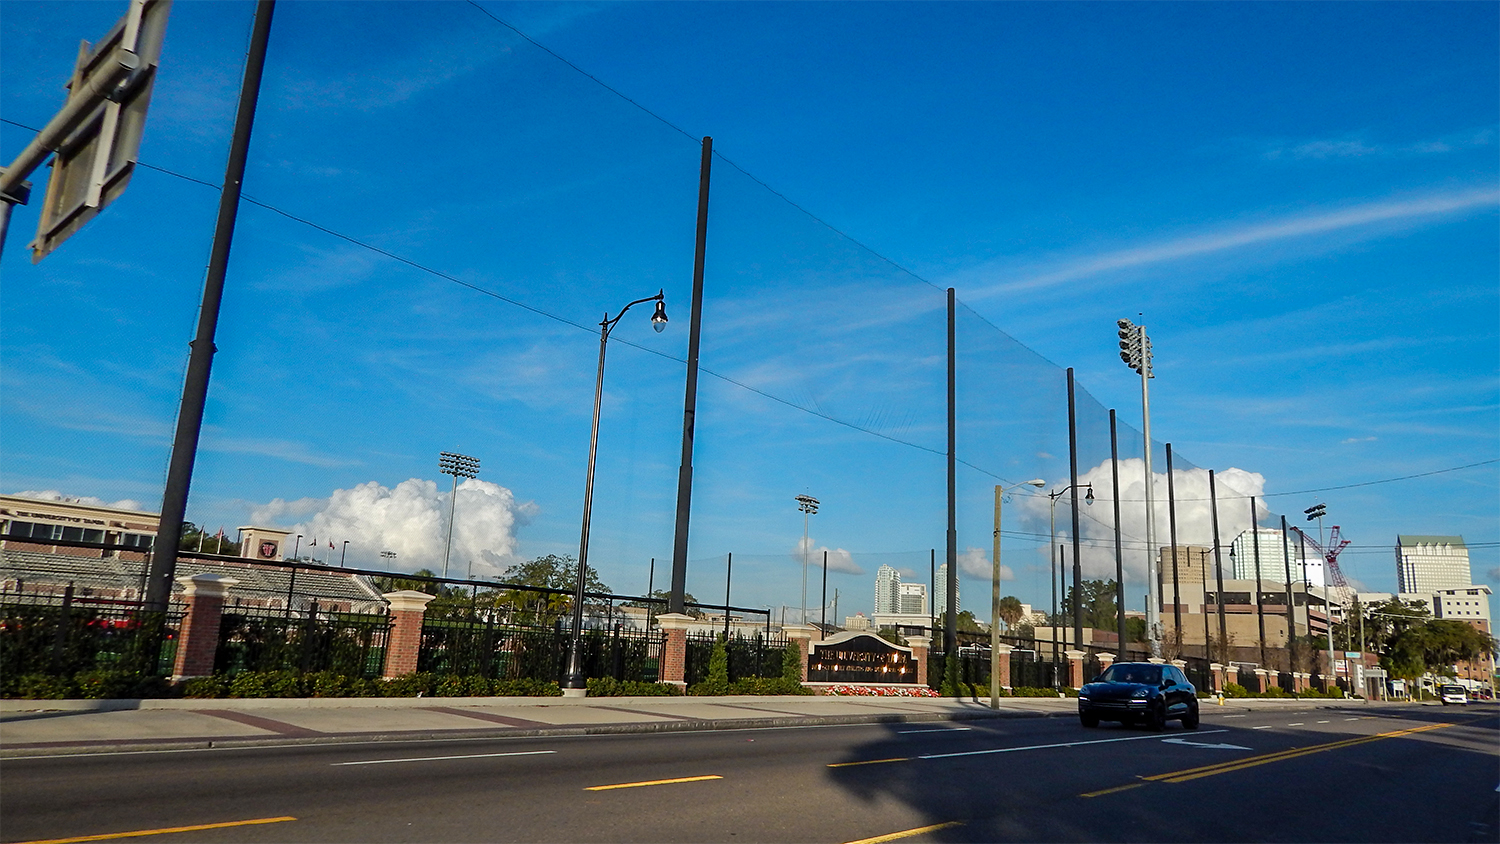 Stadium and Sport Field at University of Tampa on next to Kennedy Blvd